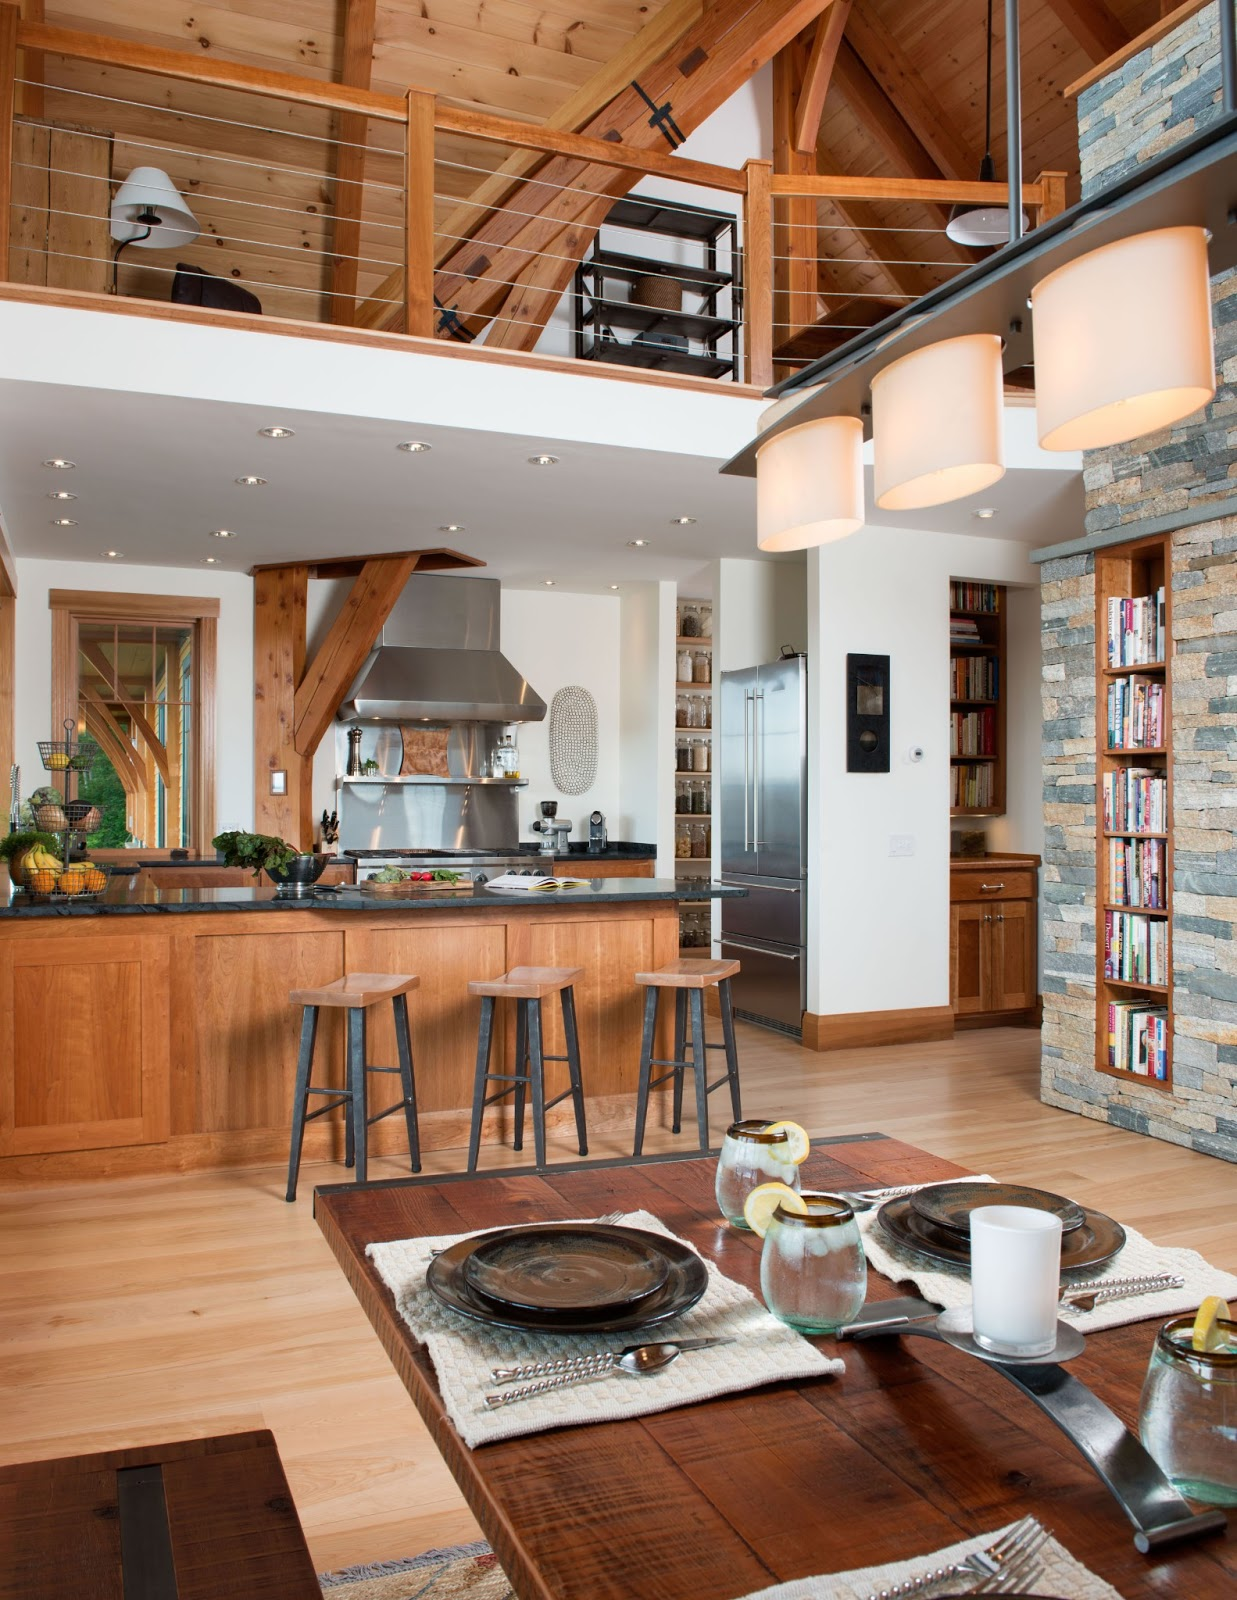 Post and beam timber frame blog january 2013 for Kitchen open floor plan